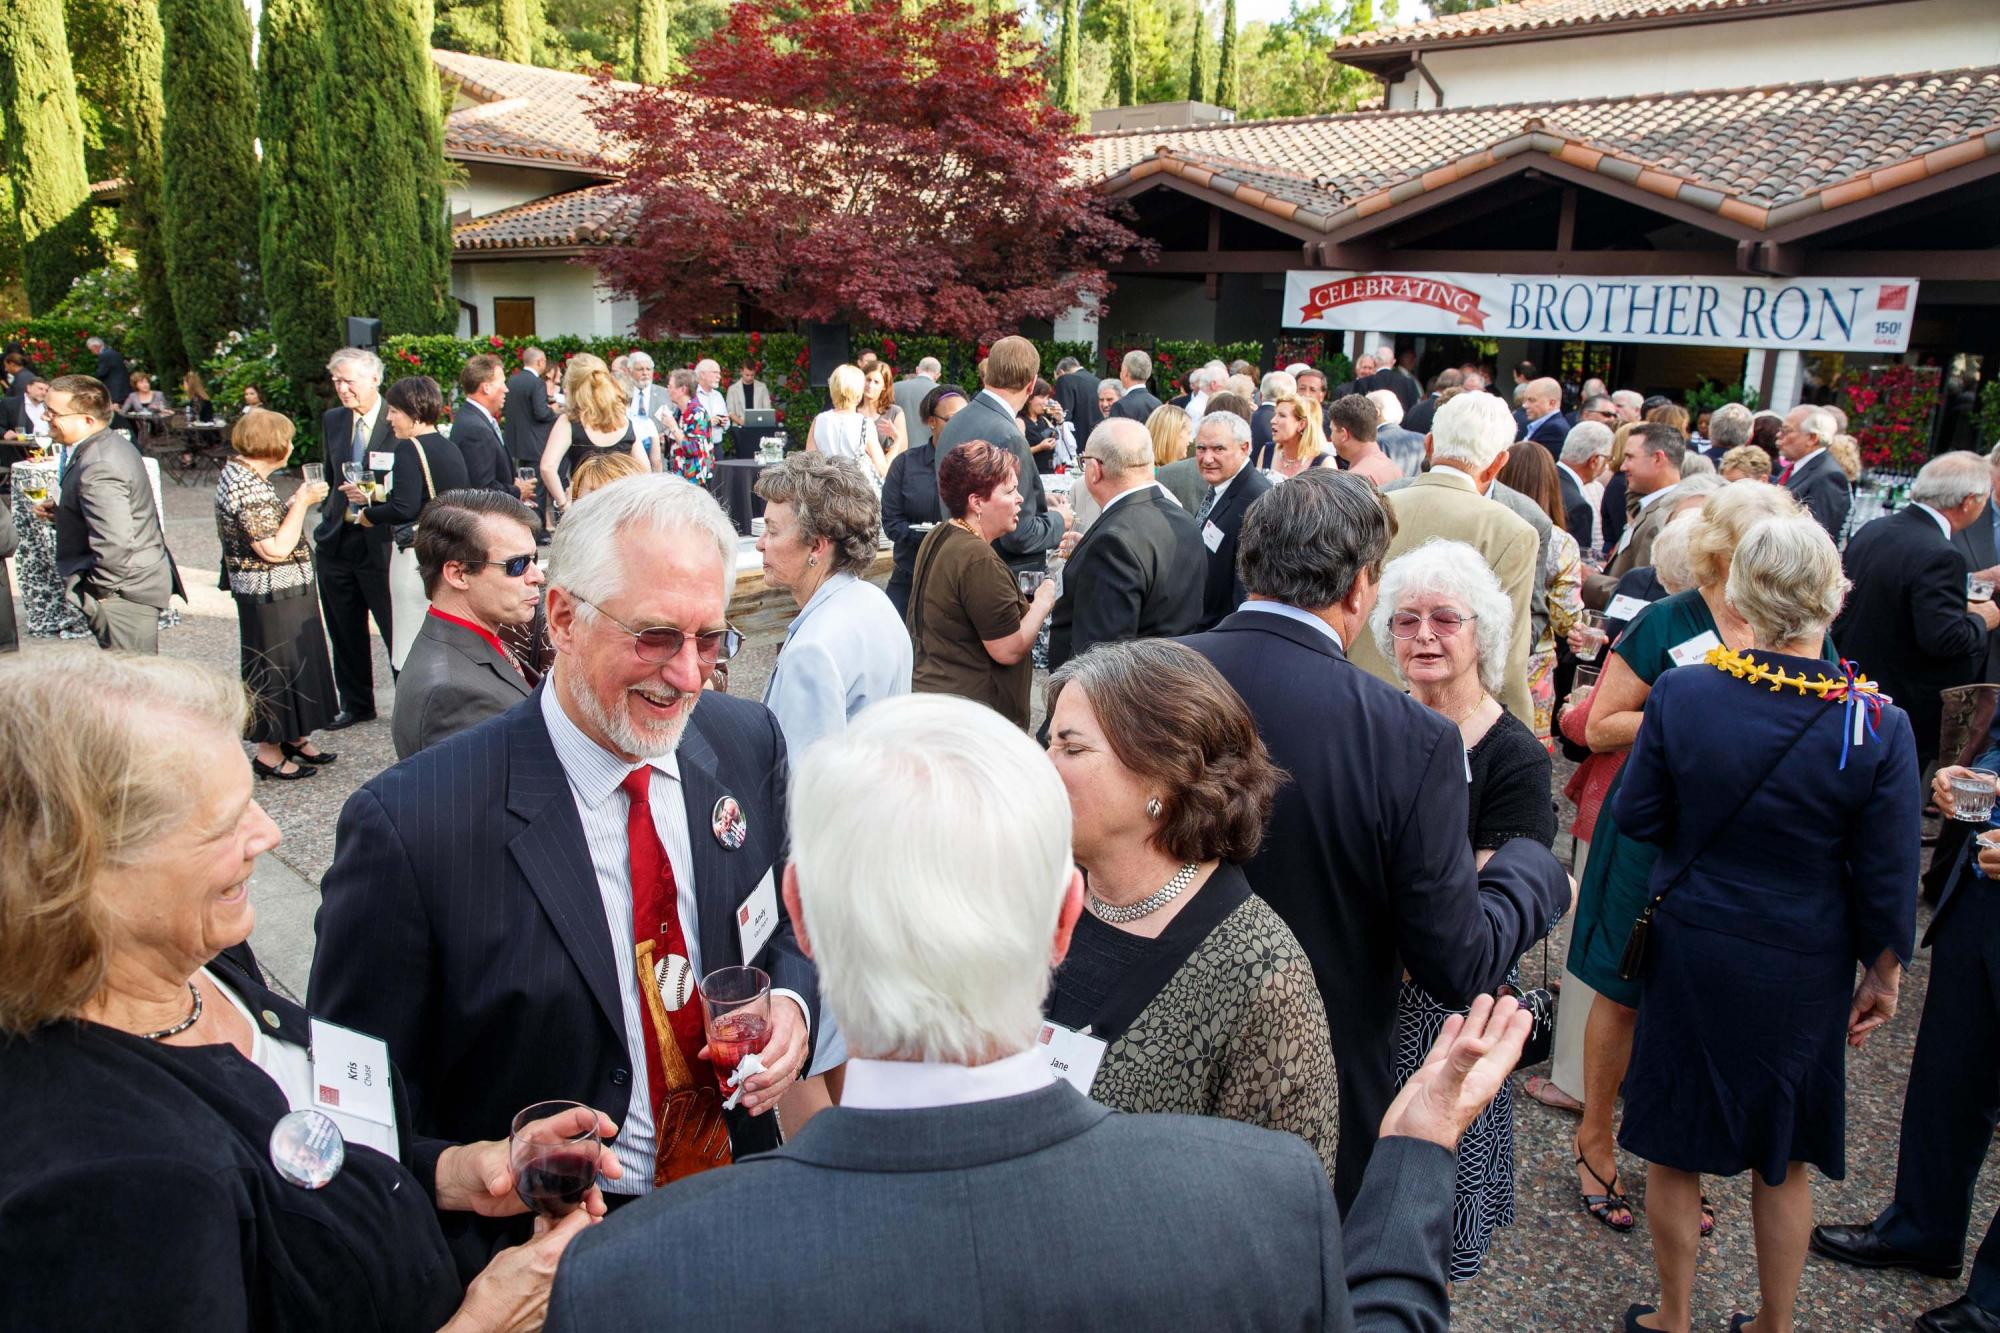 Guests caught up with each other at a festive pre-dinner reception in front of the Soda Center.